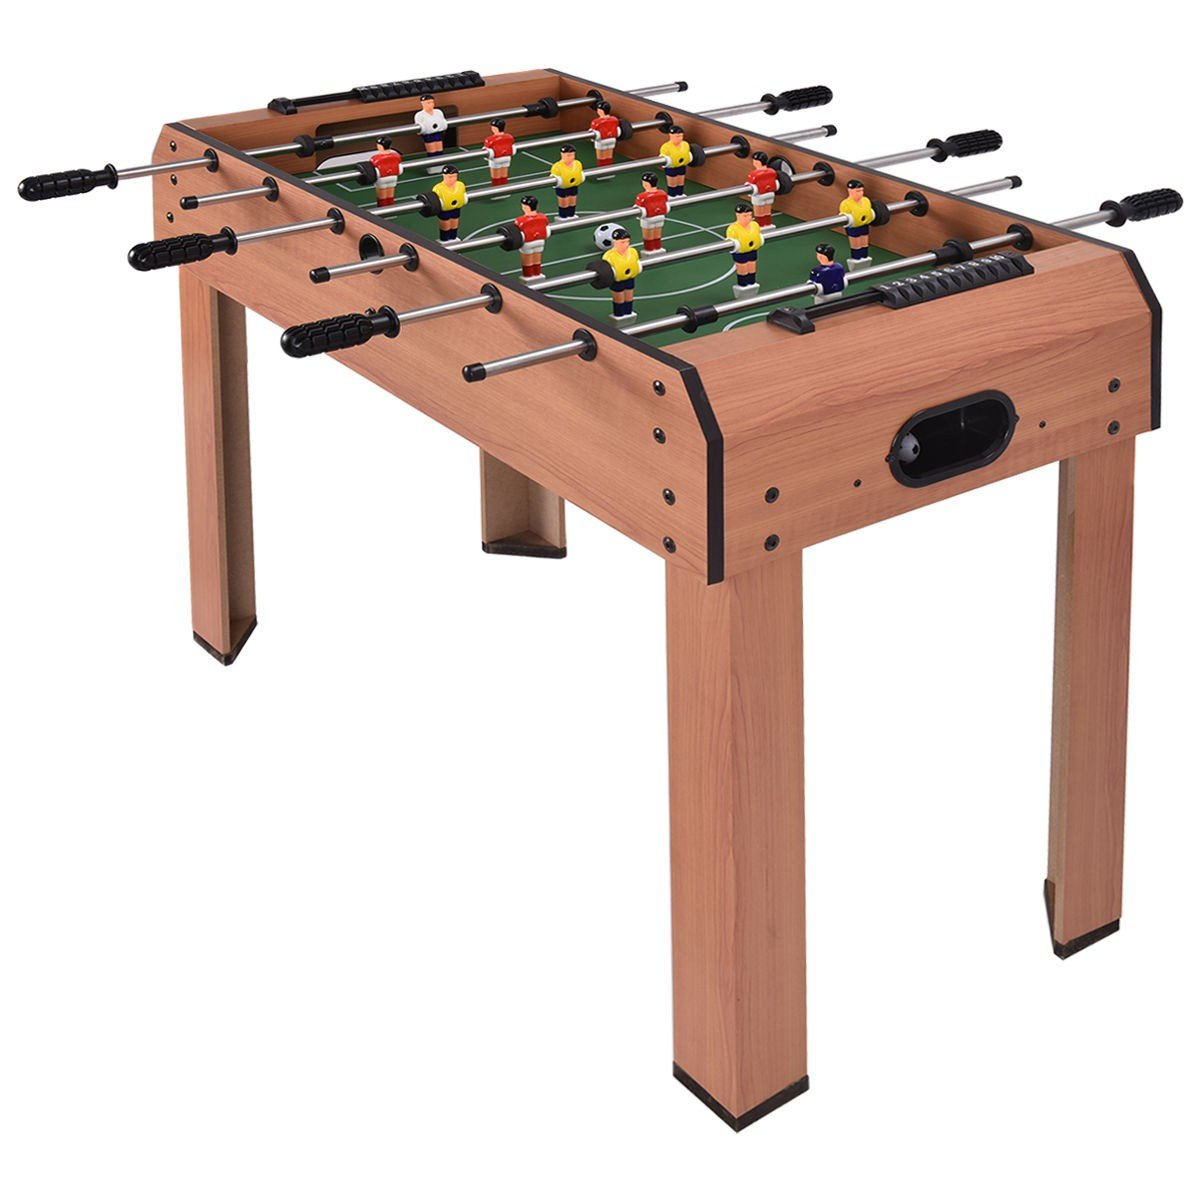 37'' Indoor Arcade Game Foosball Table for Recreation Living Room Winter Summer All Seasons! (Blue, 37) by Costways